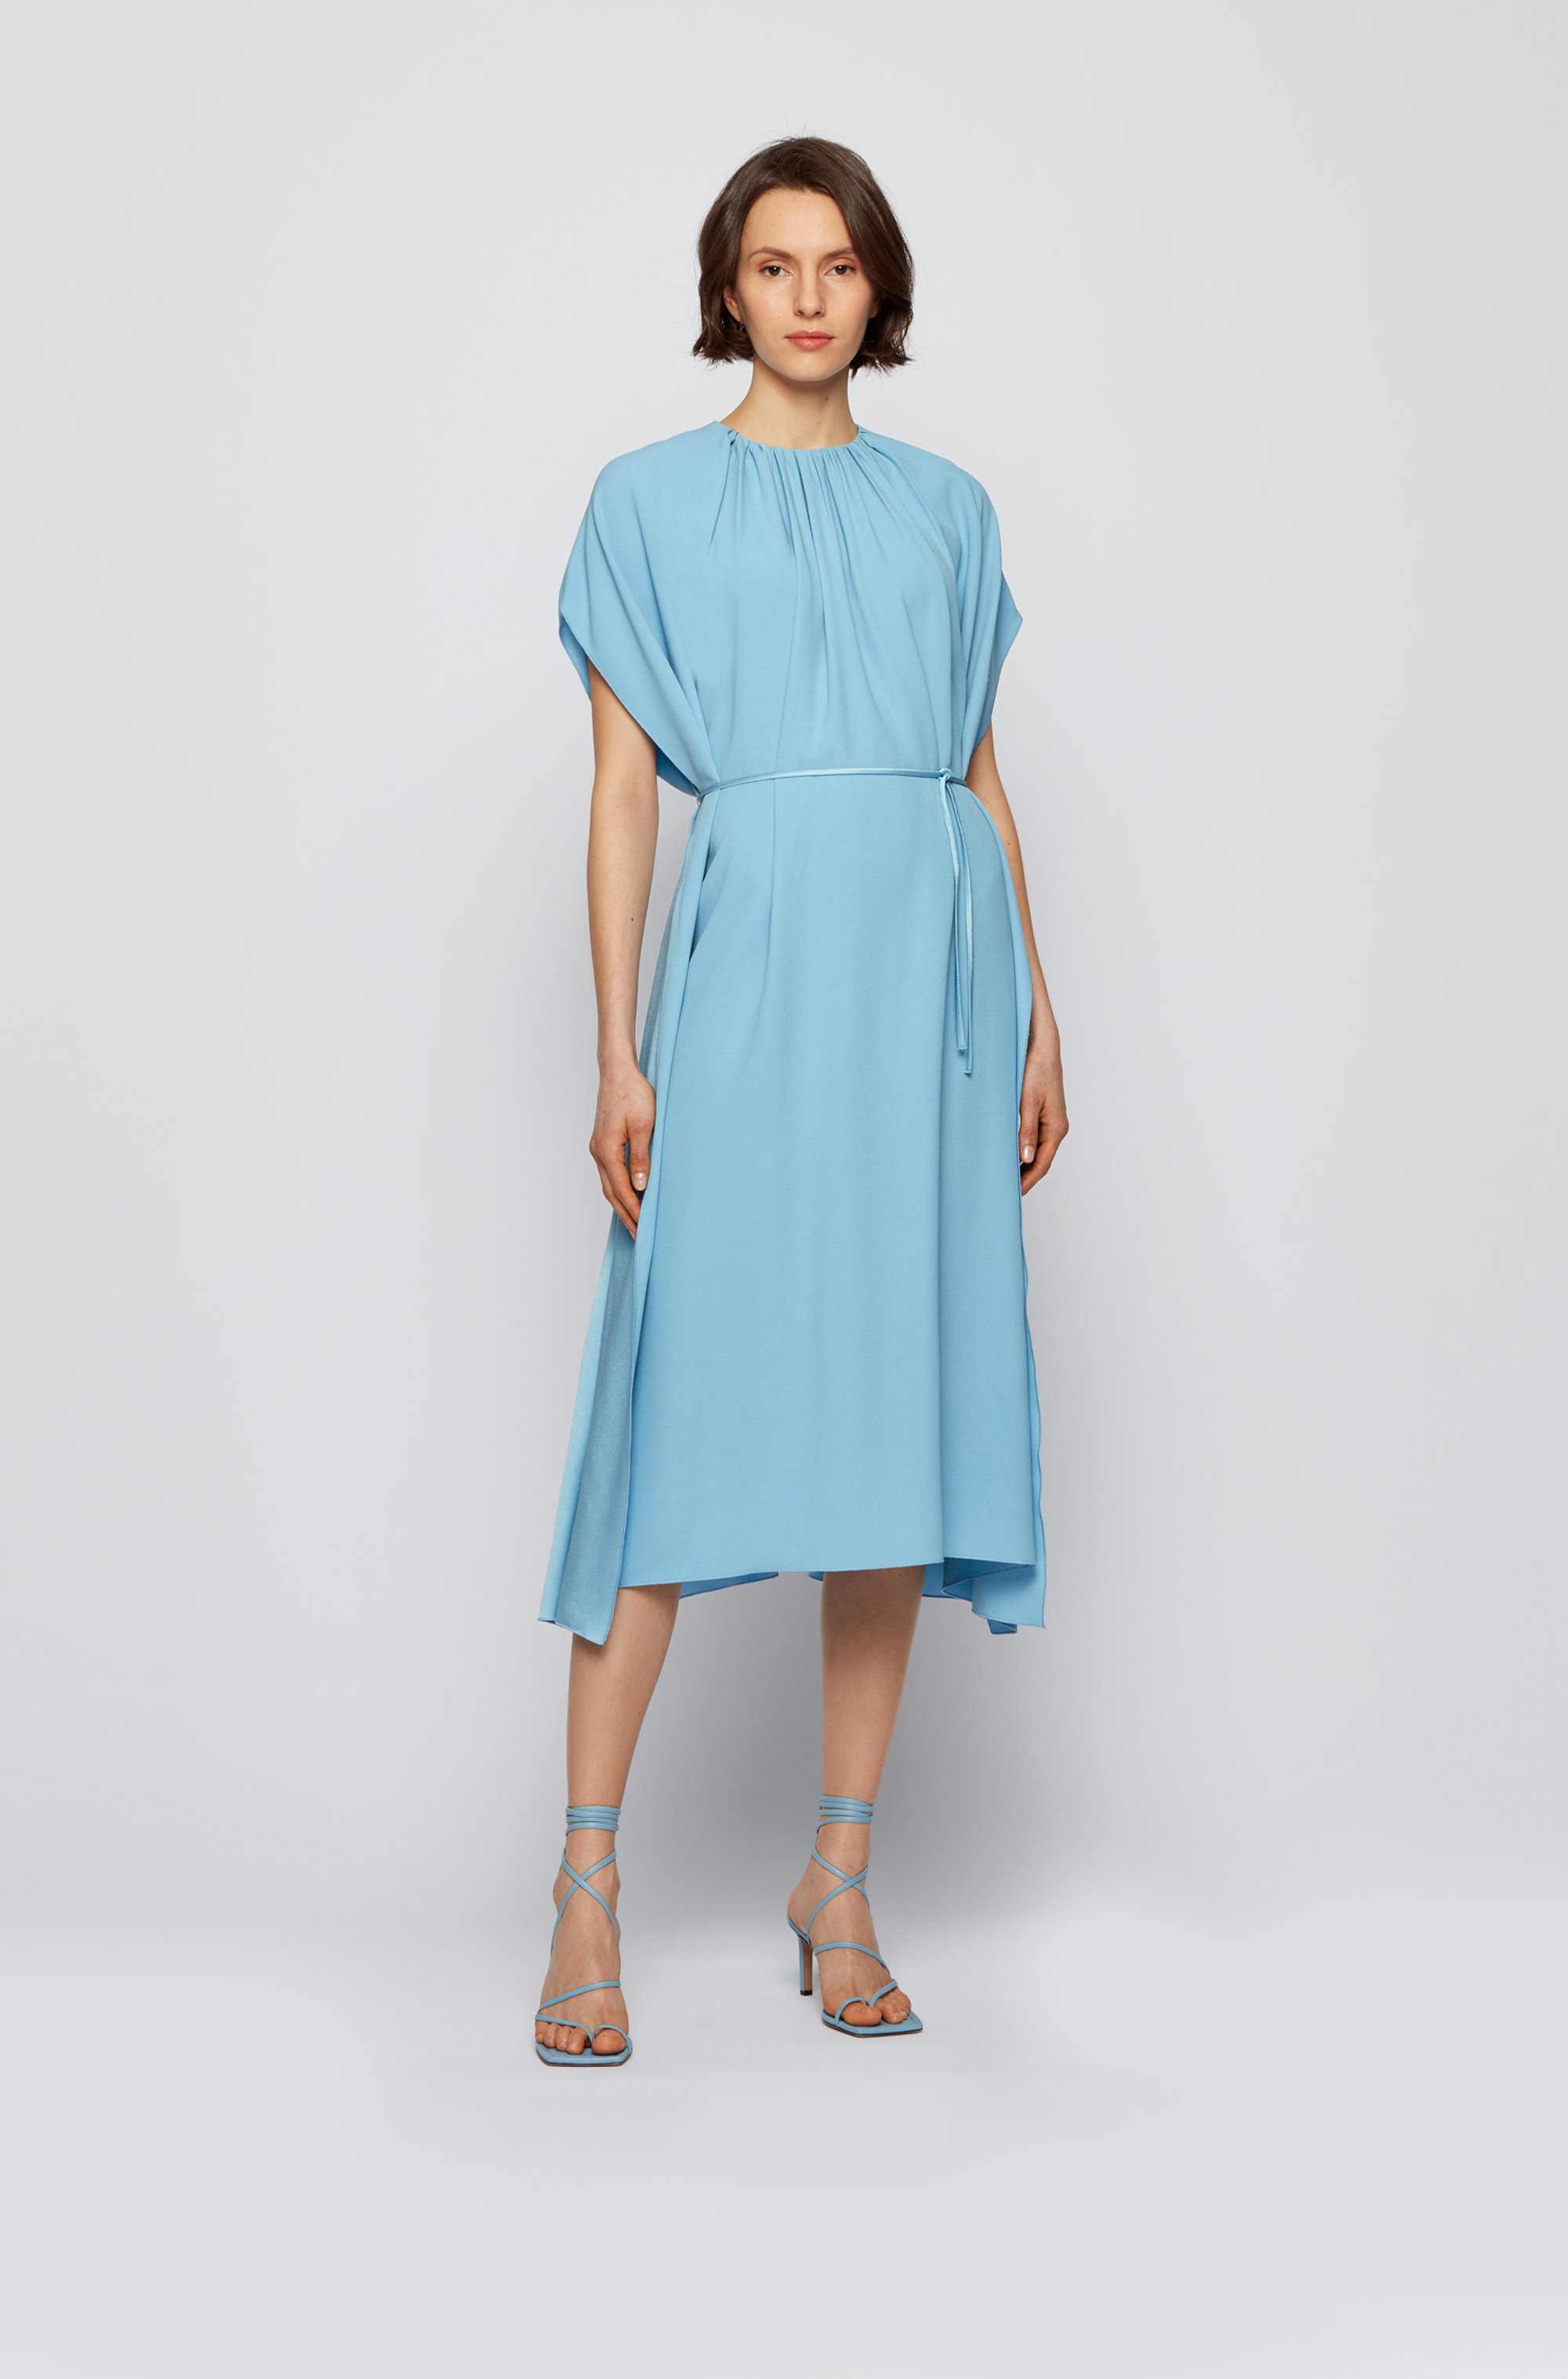 Kimono-sleeve dress in satin-back crepe